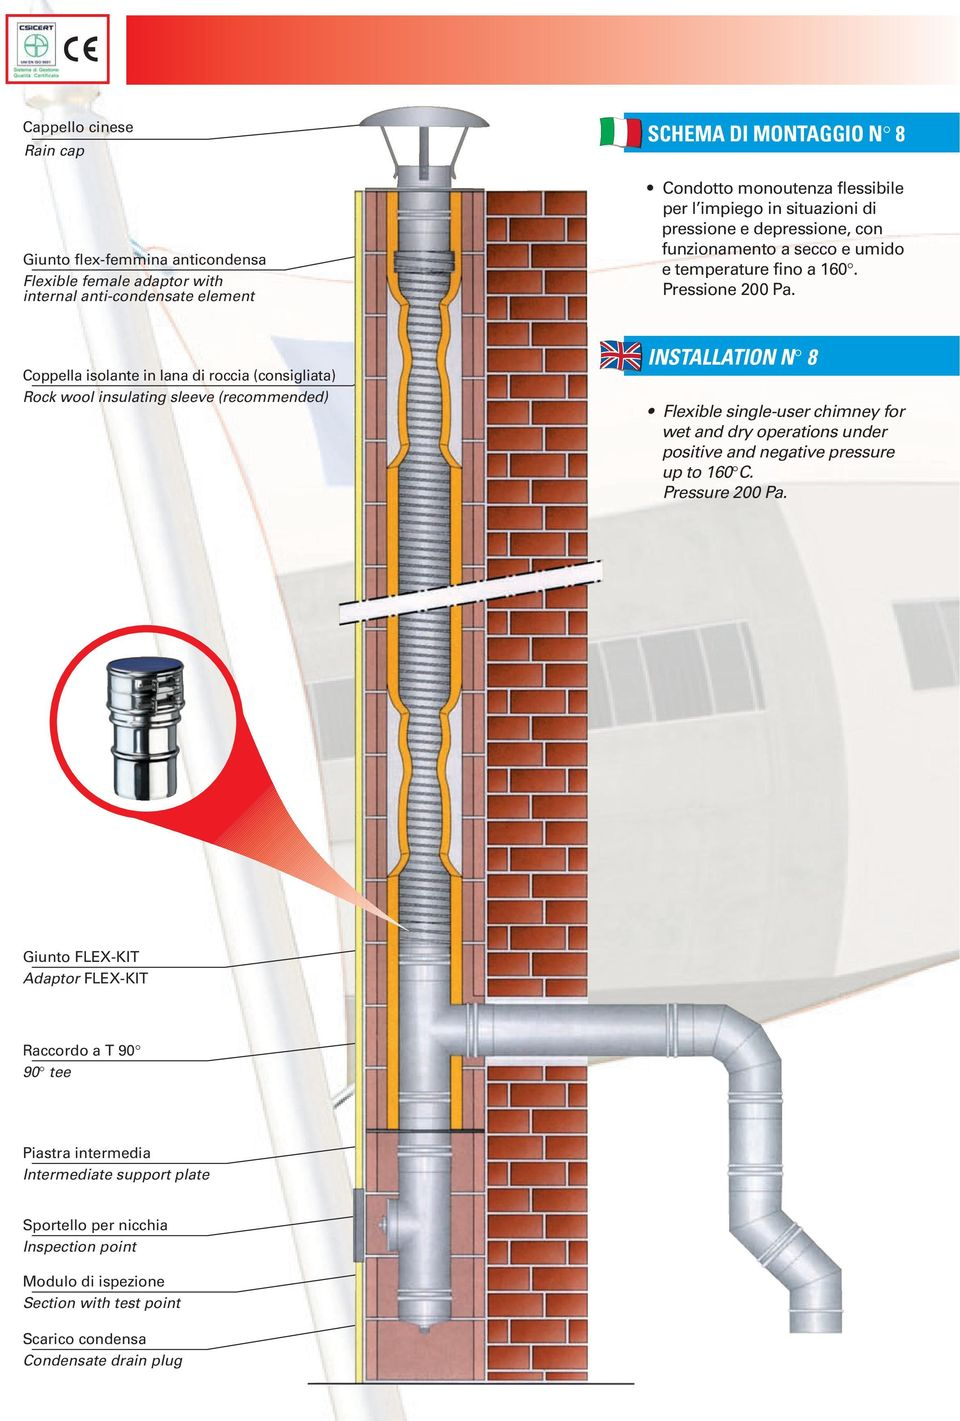 Coppella isolante in lana di roccia (consigliata) Rock wool insulating sleeve (recommended) INSTALLATION N 8 Flexible single-user chimney for wet and dry operations